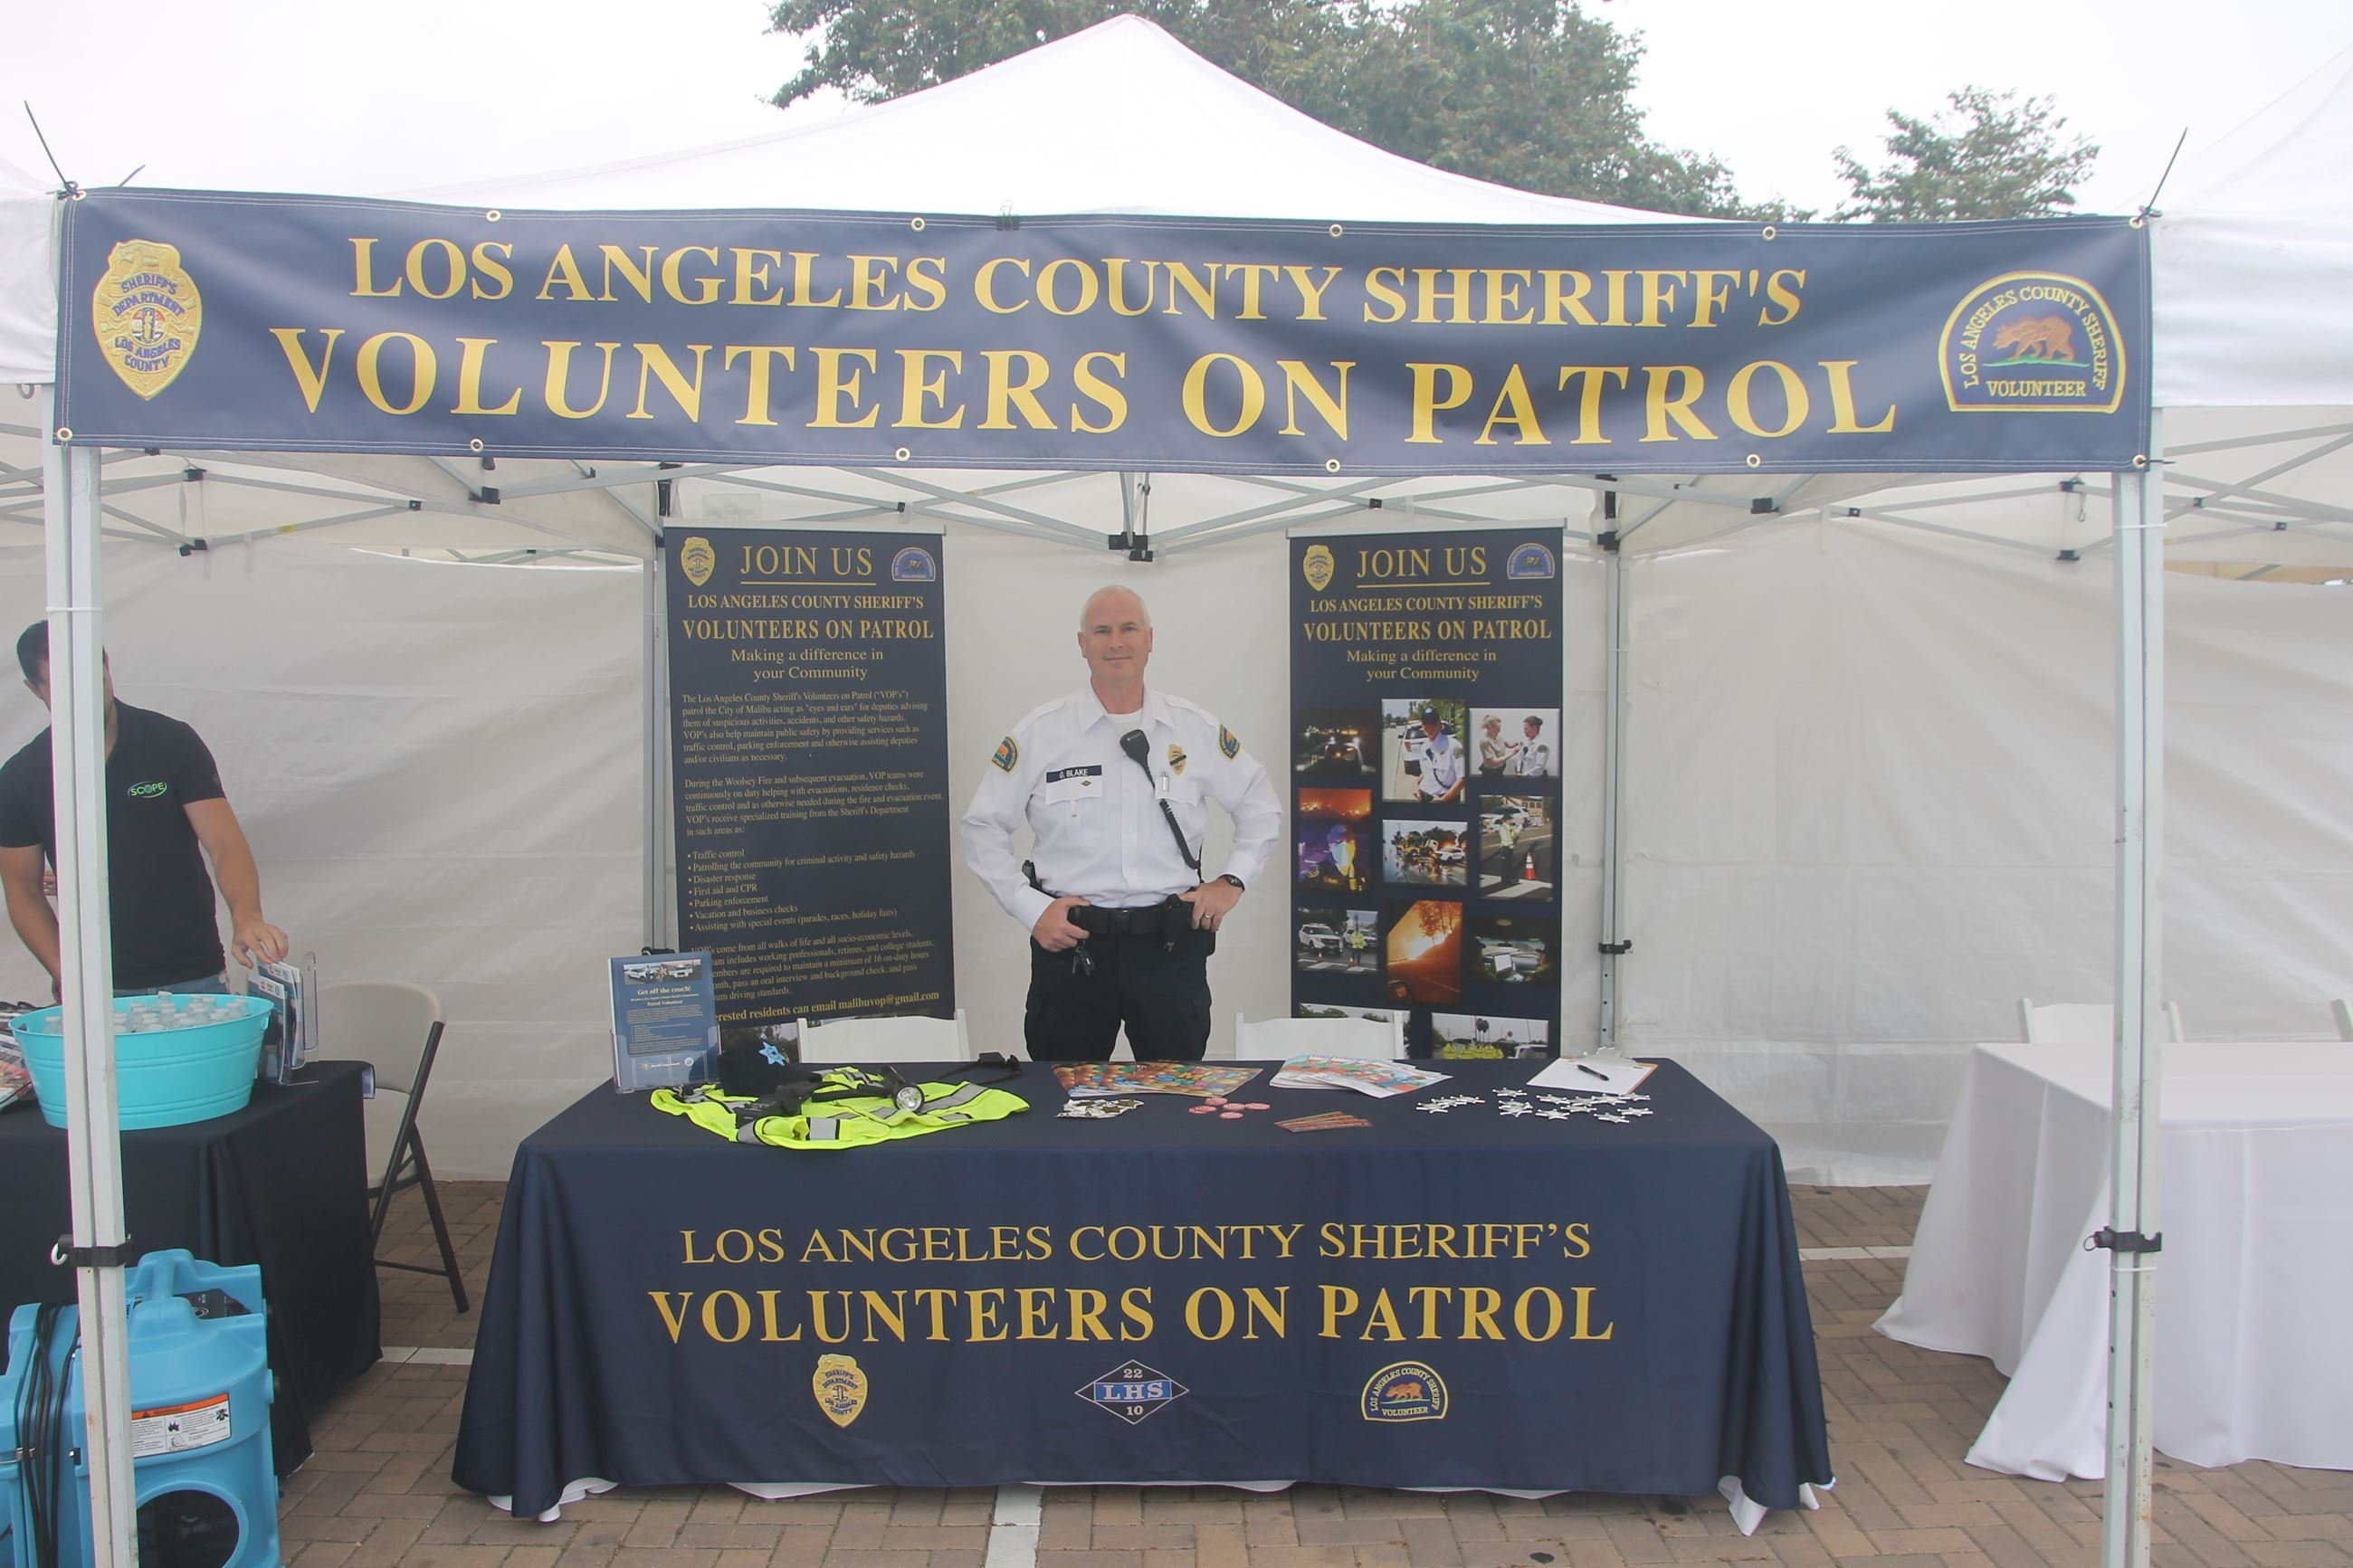 Volunteers on Patrol Booth